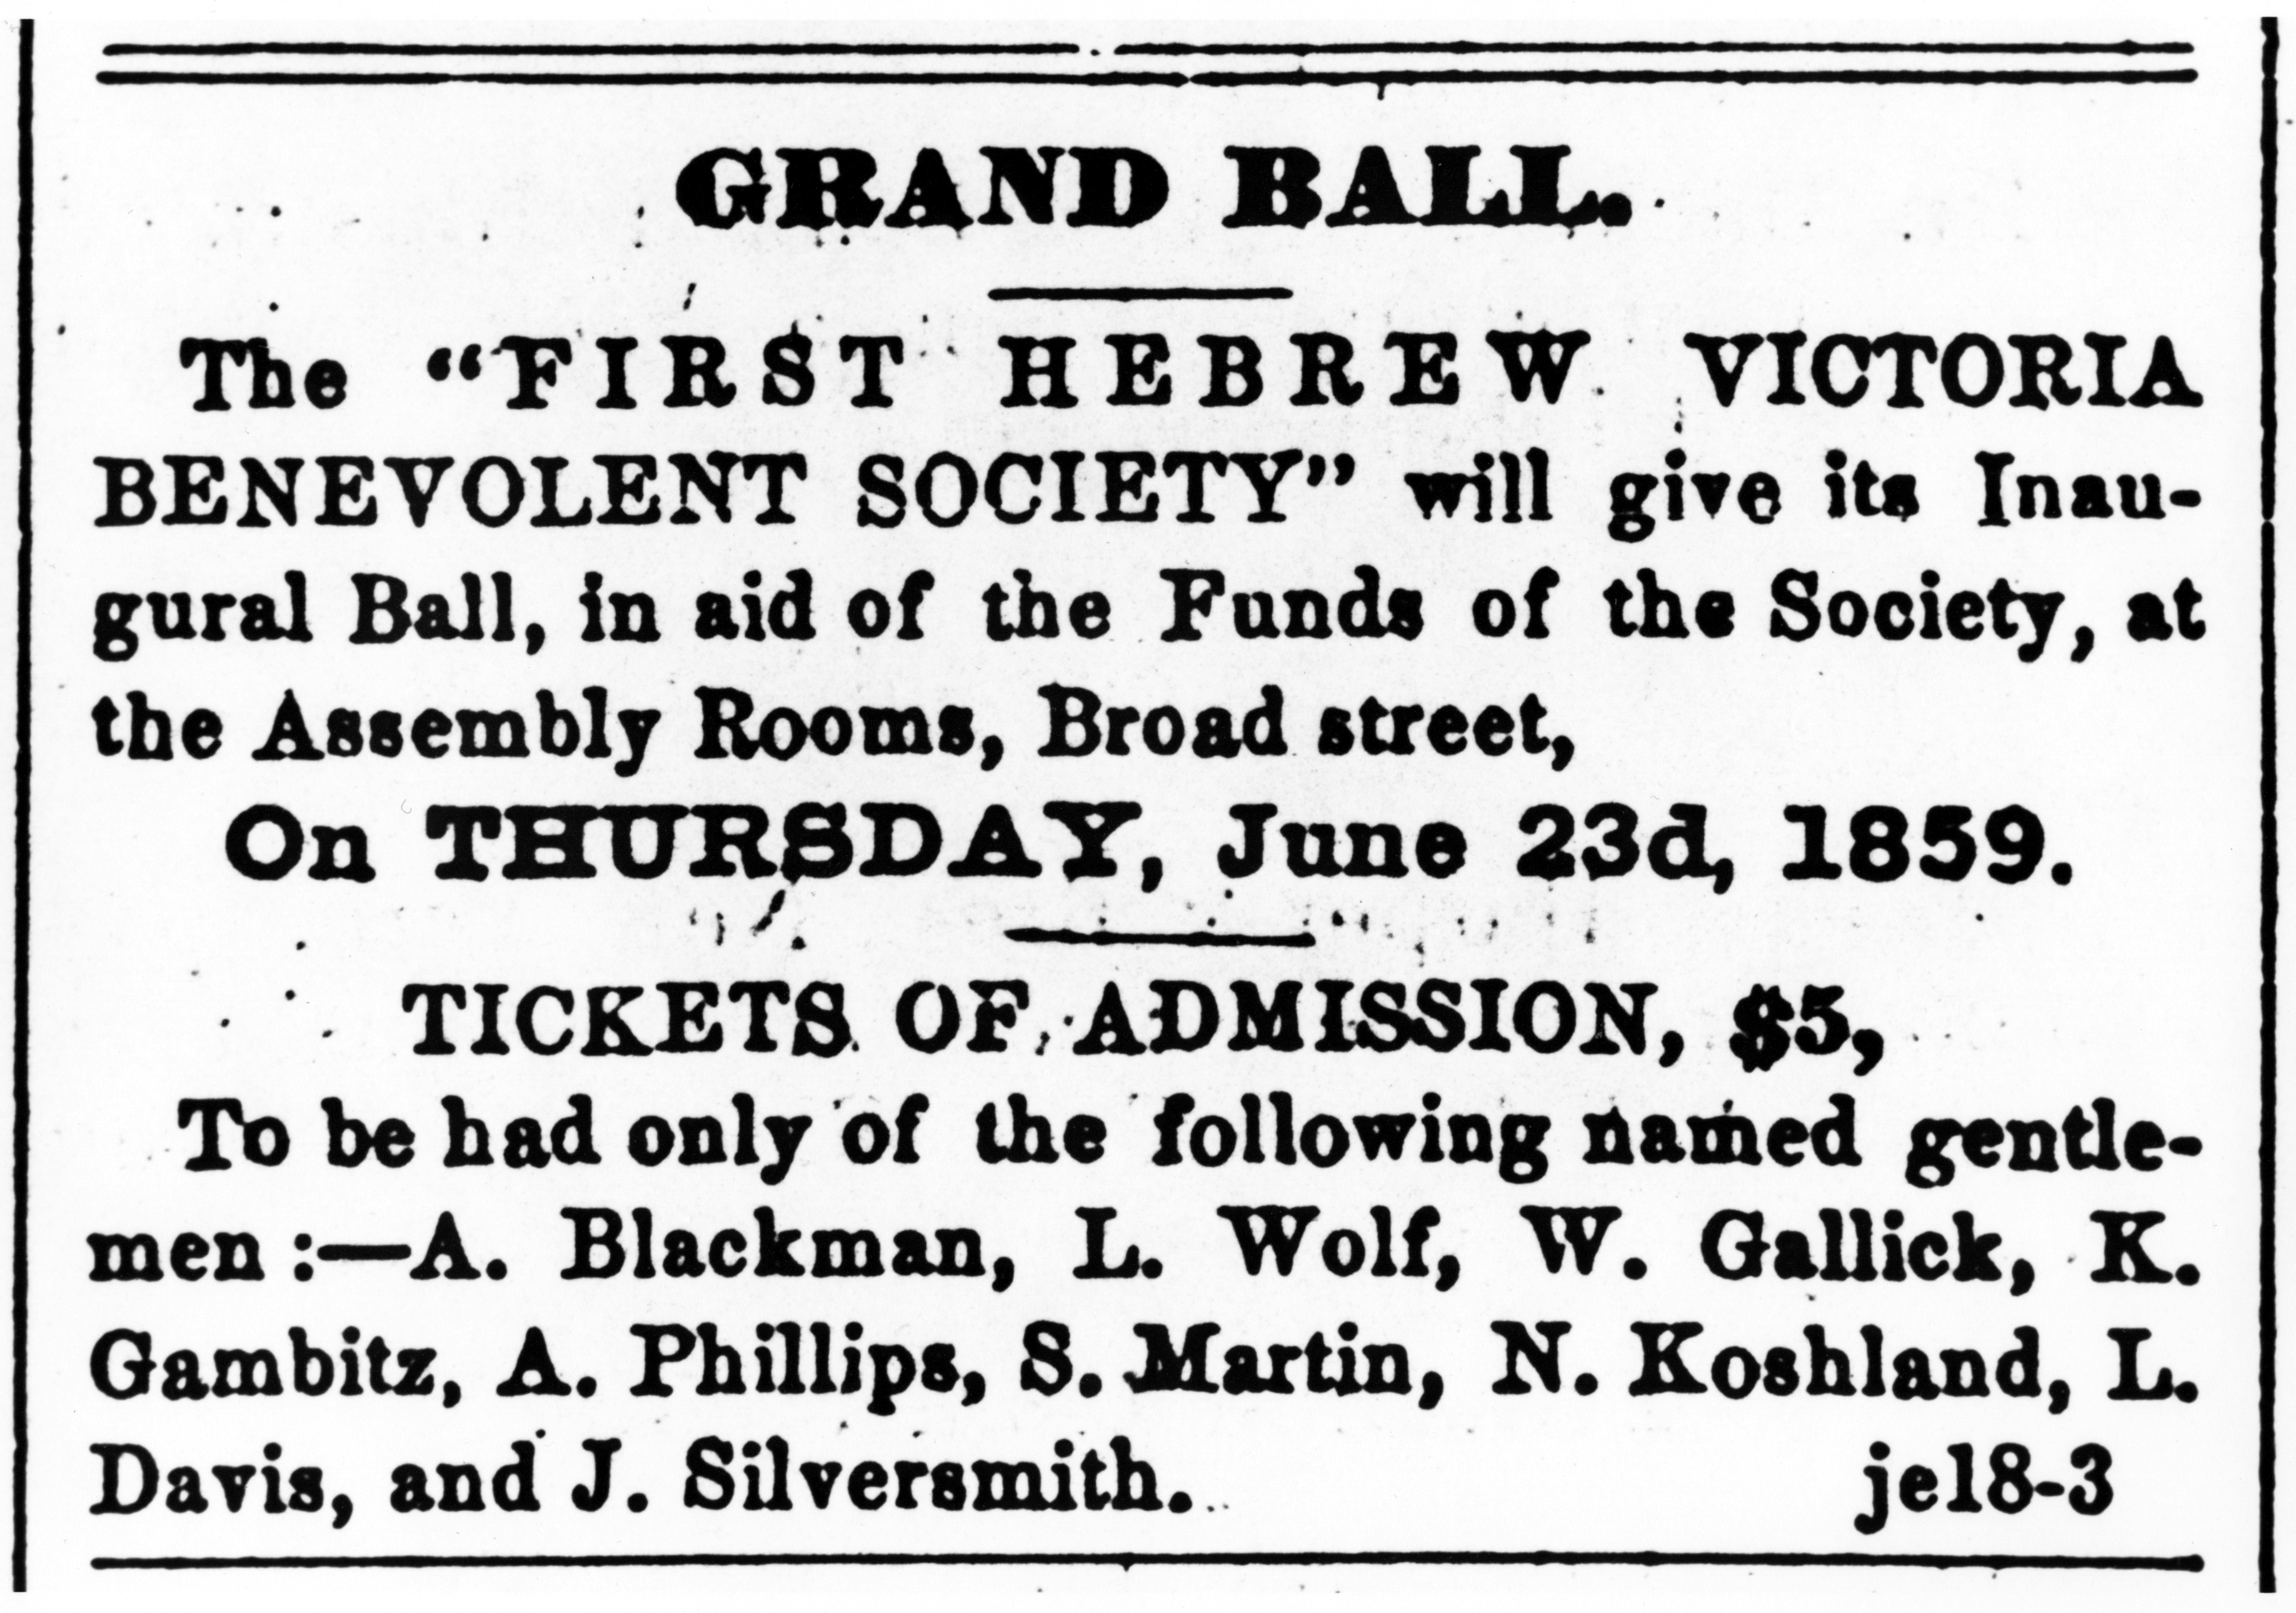 Advertisement for the fundraising ball, hosted by the Benevolent Society (L.01437).